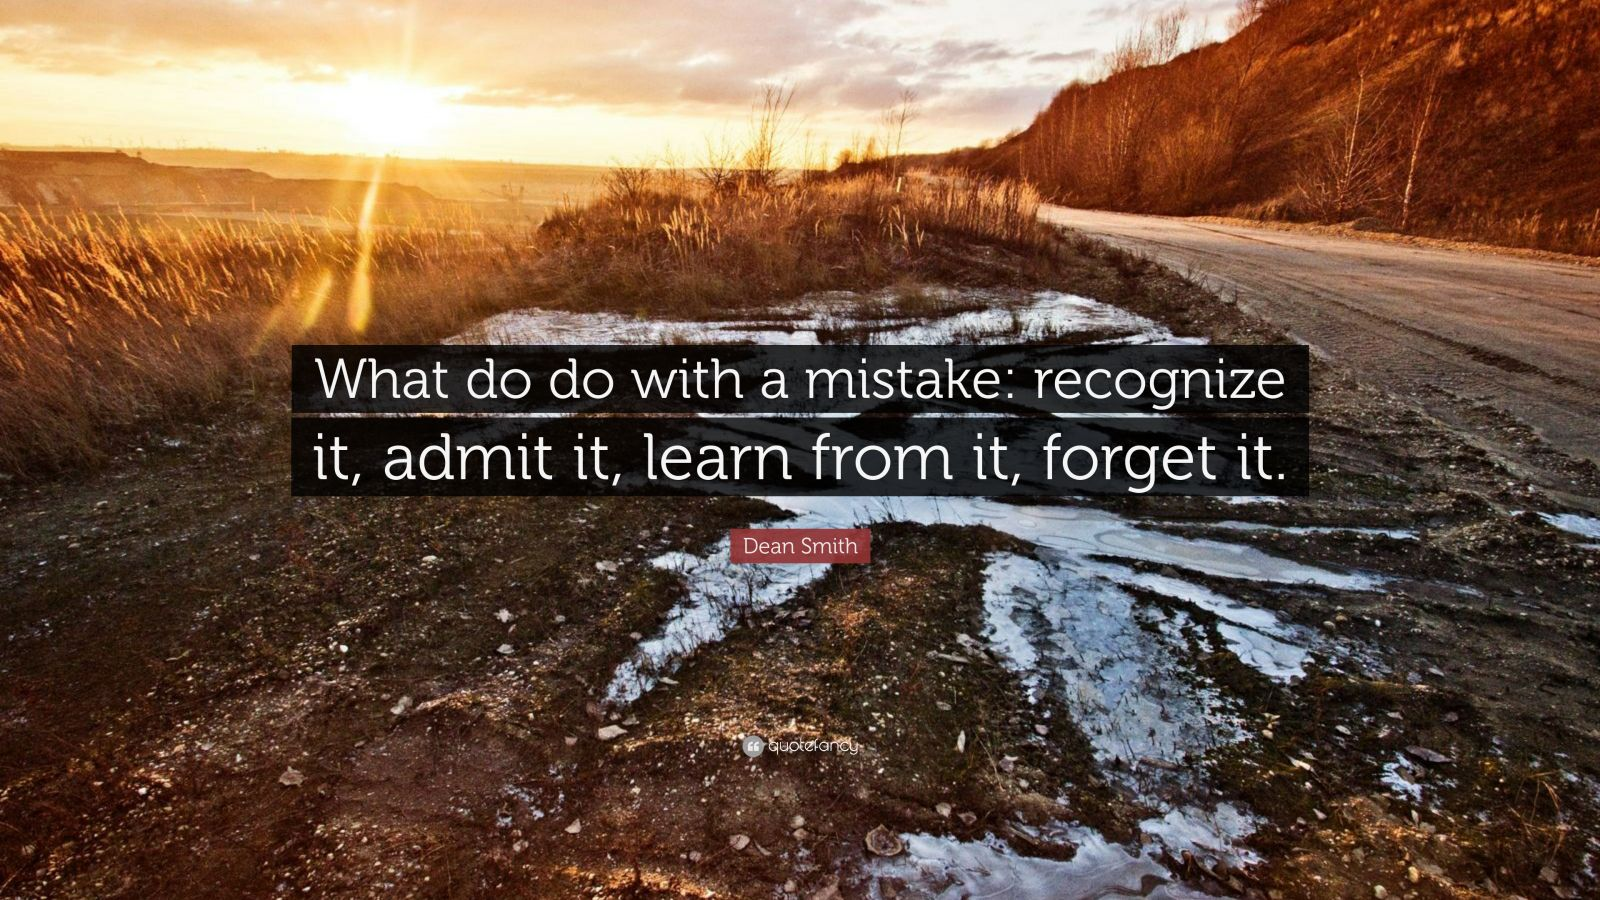 """Dean Smith Quote: """"What do do with a mistake: recognize it, admit it, learn from it, forget it."""""""